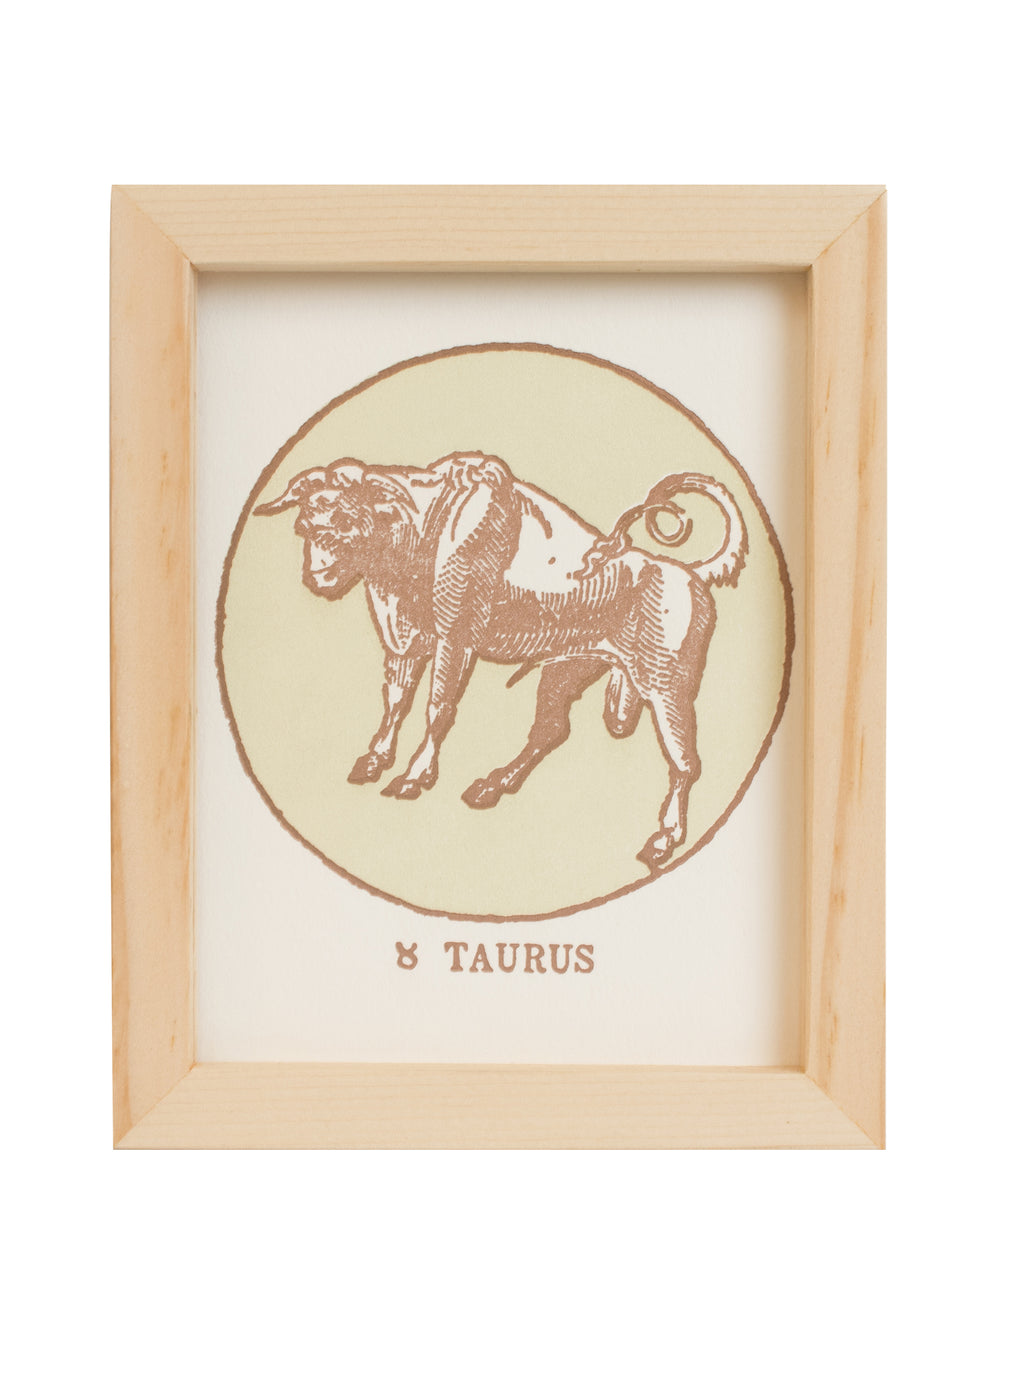 Taurus (April 20 - May 20)